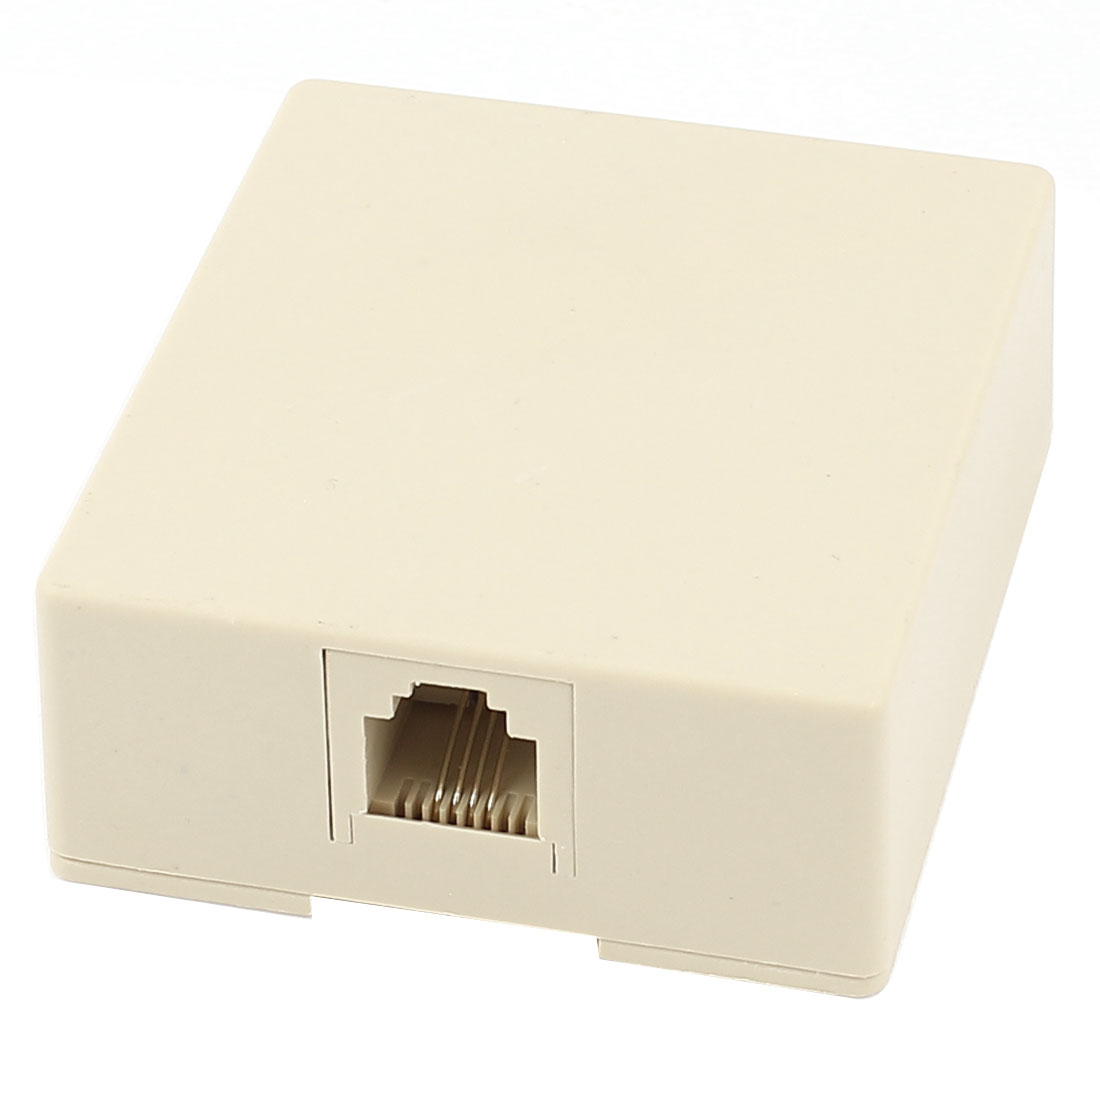 RJ11 4 Pin Telephone Modular Single Port Surface Mount Jack